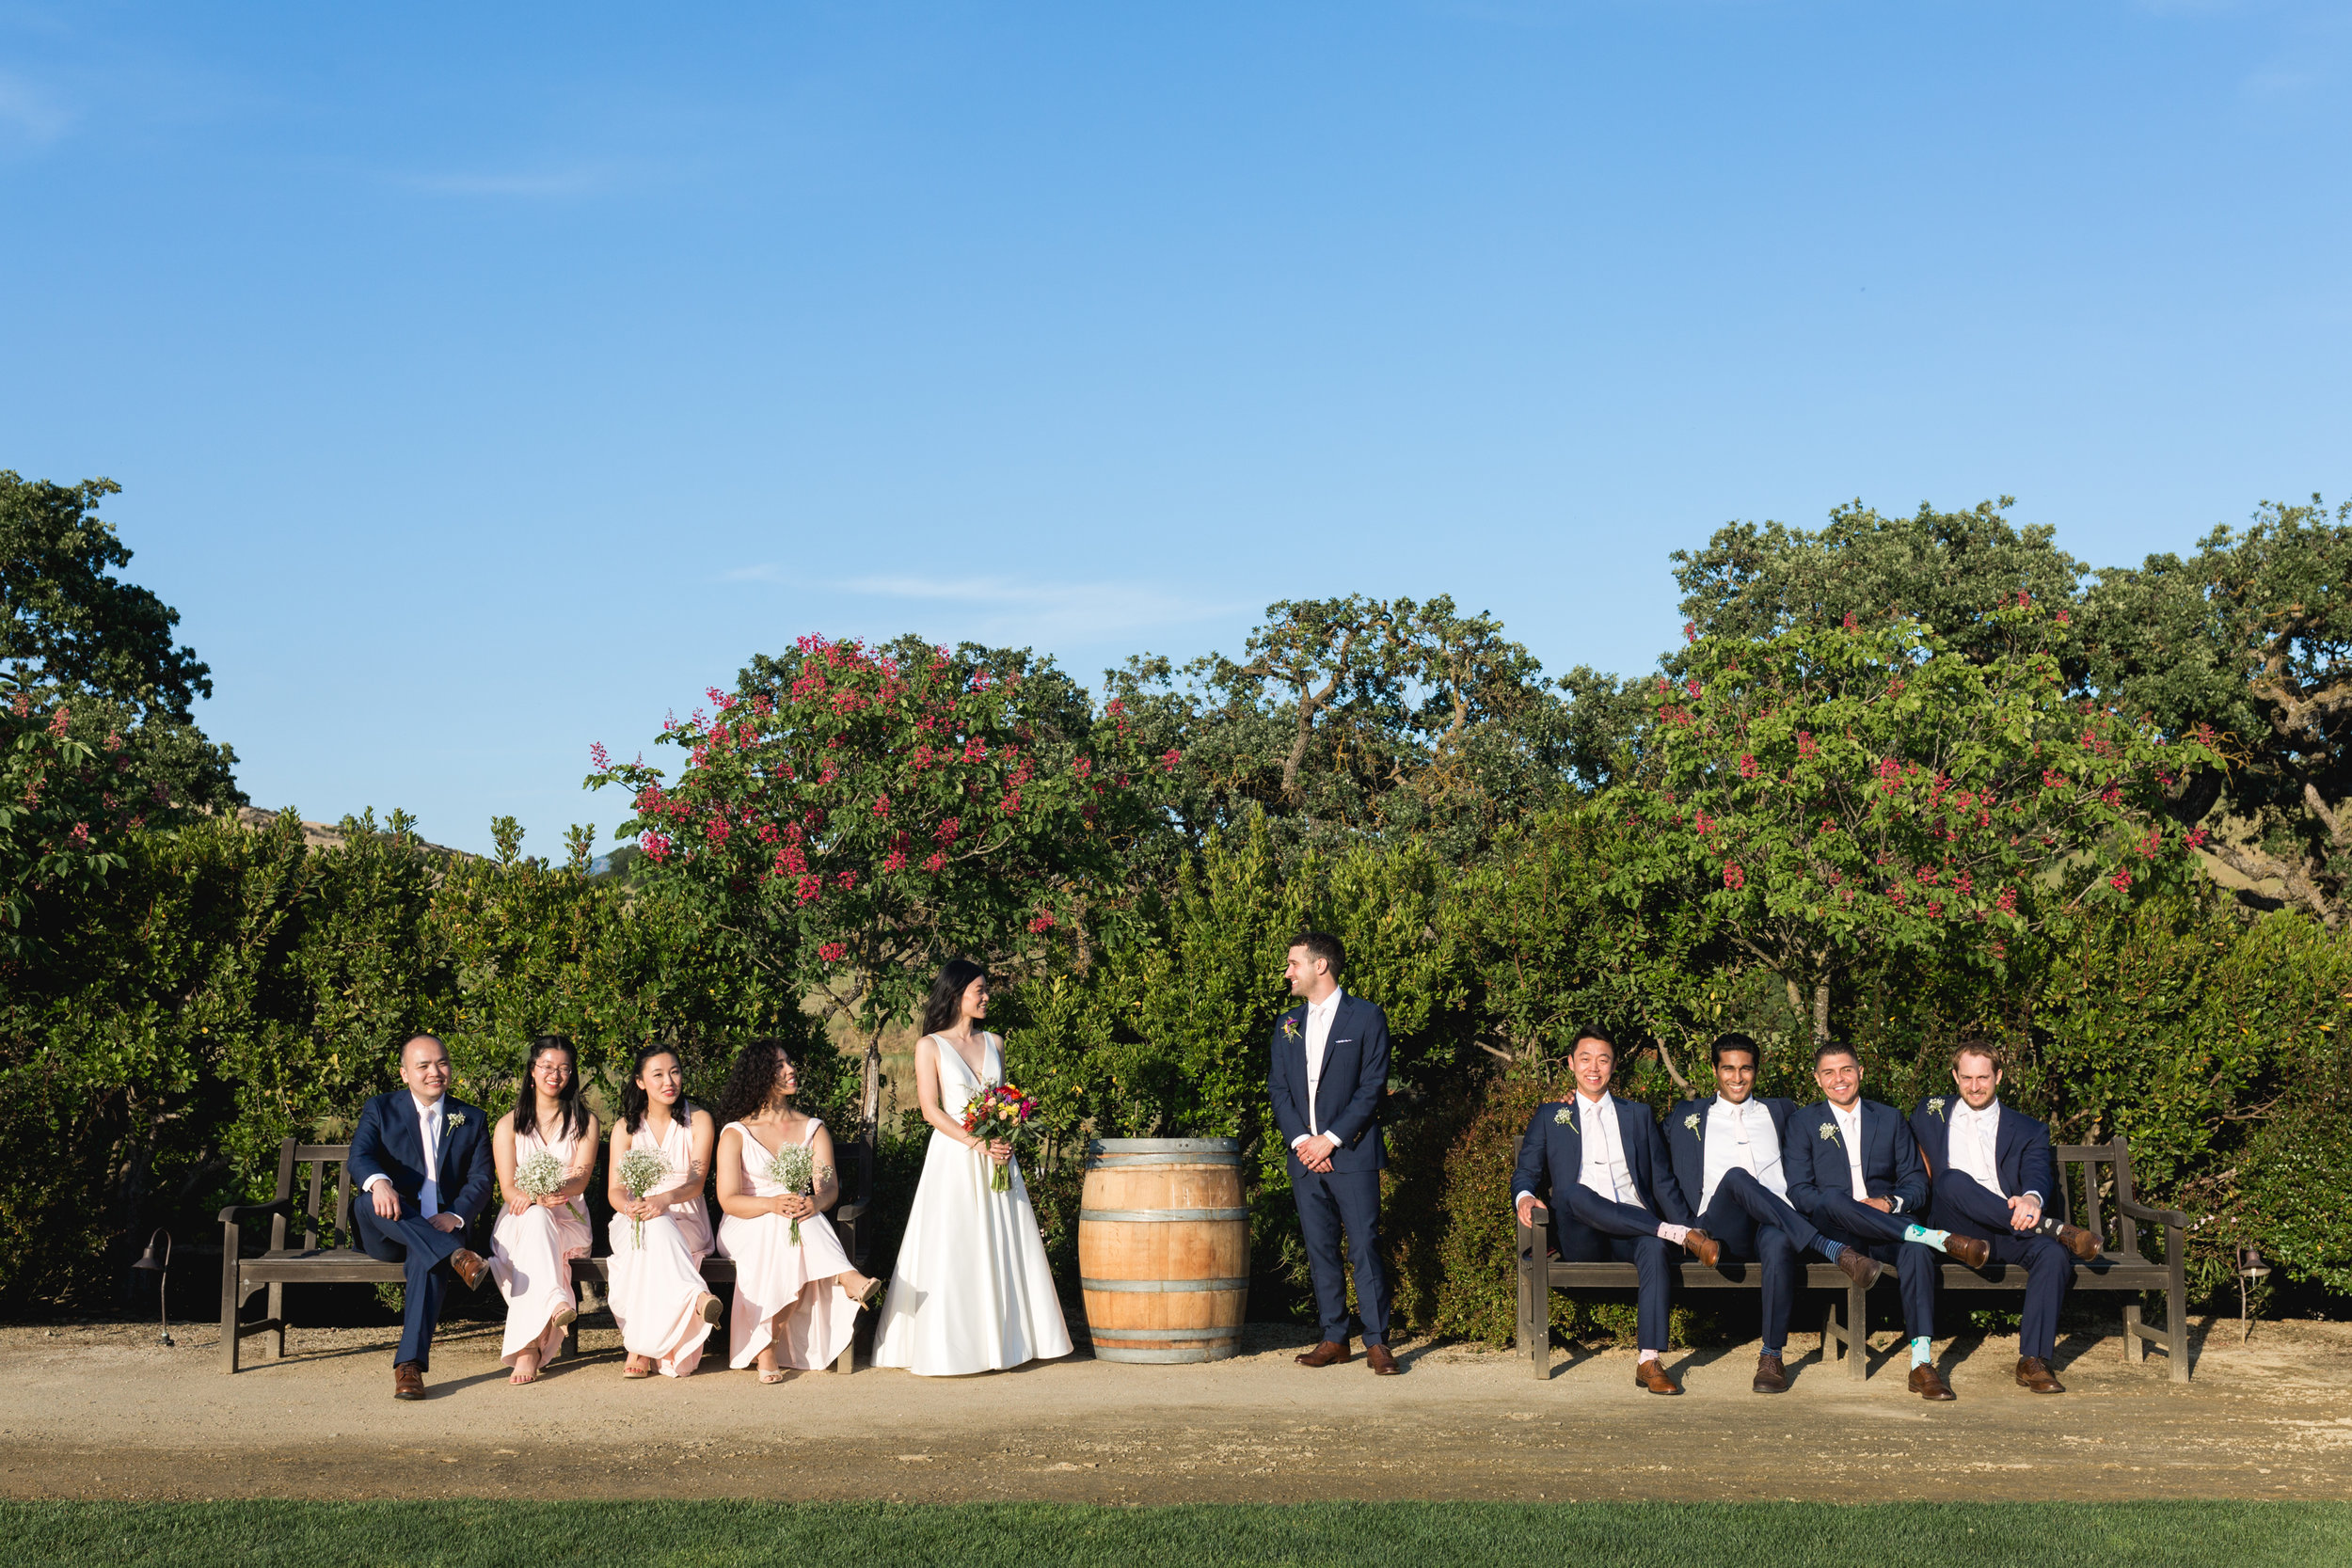 sfweddingparty_sfbrideandgroom_closlachancewinery_sfweddingphotographer